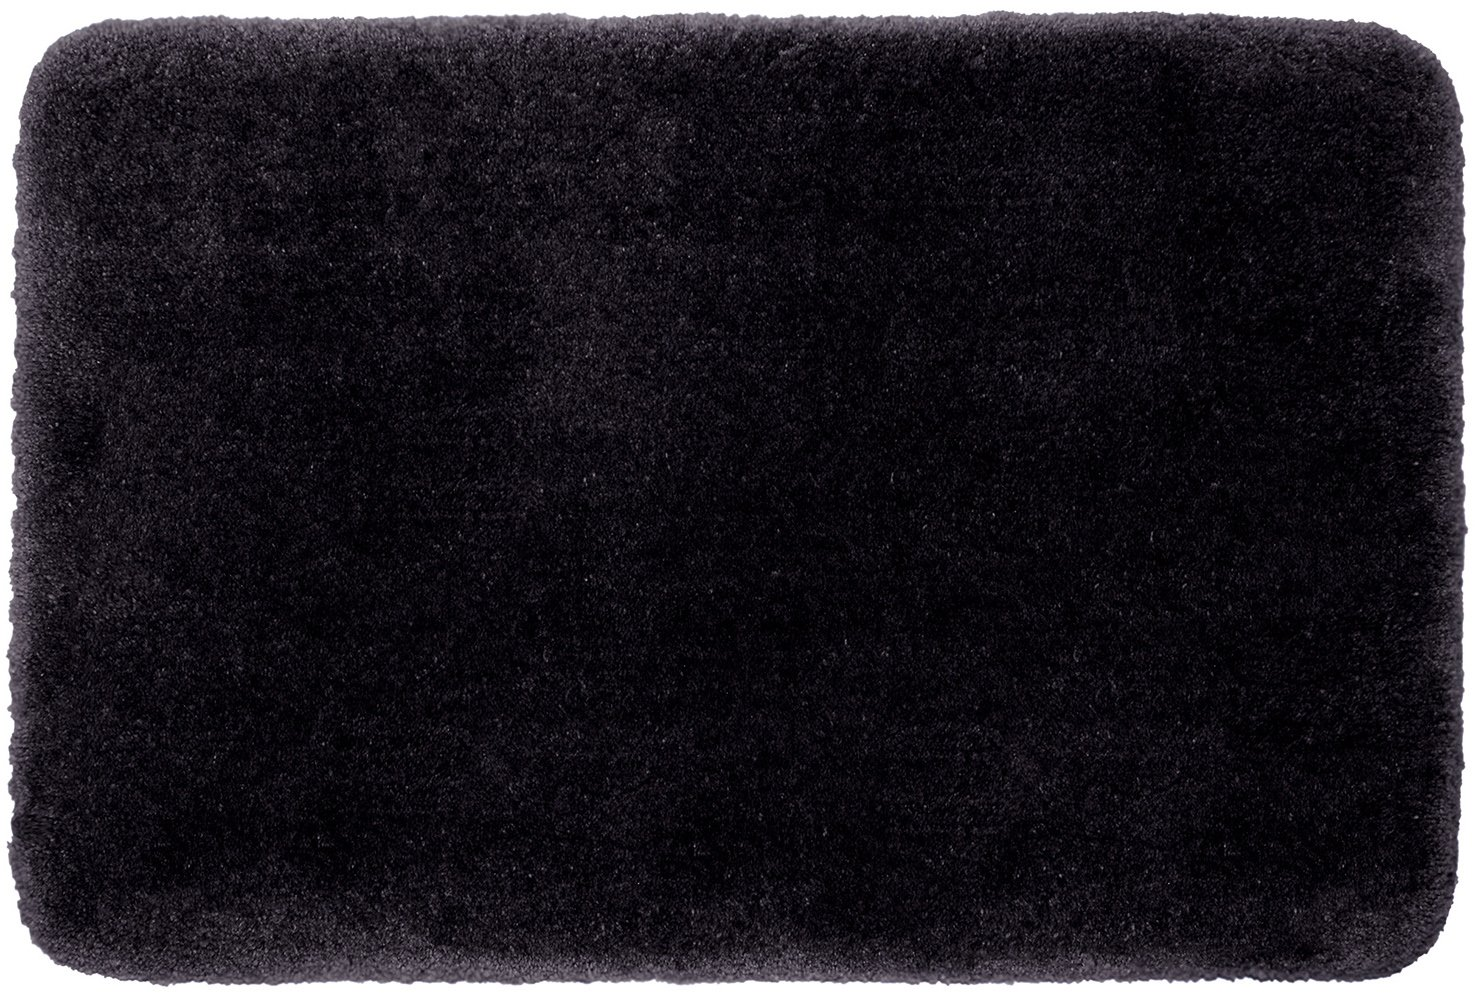 STAINMASTER TruSoft Luxurious Bath Rug, 24-By-40 Inch Black Pepper